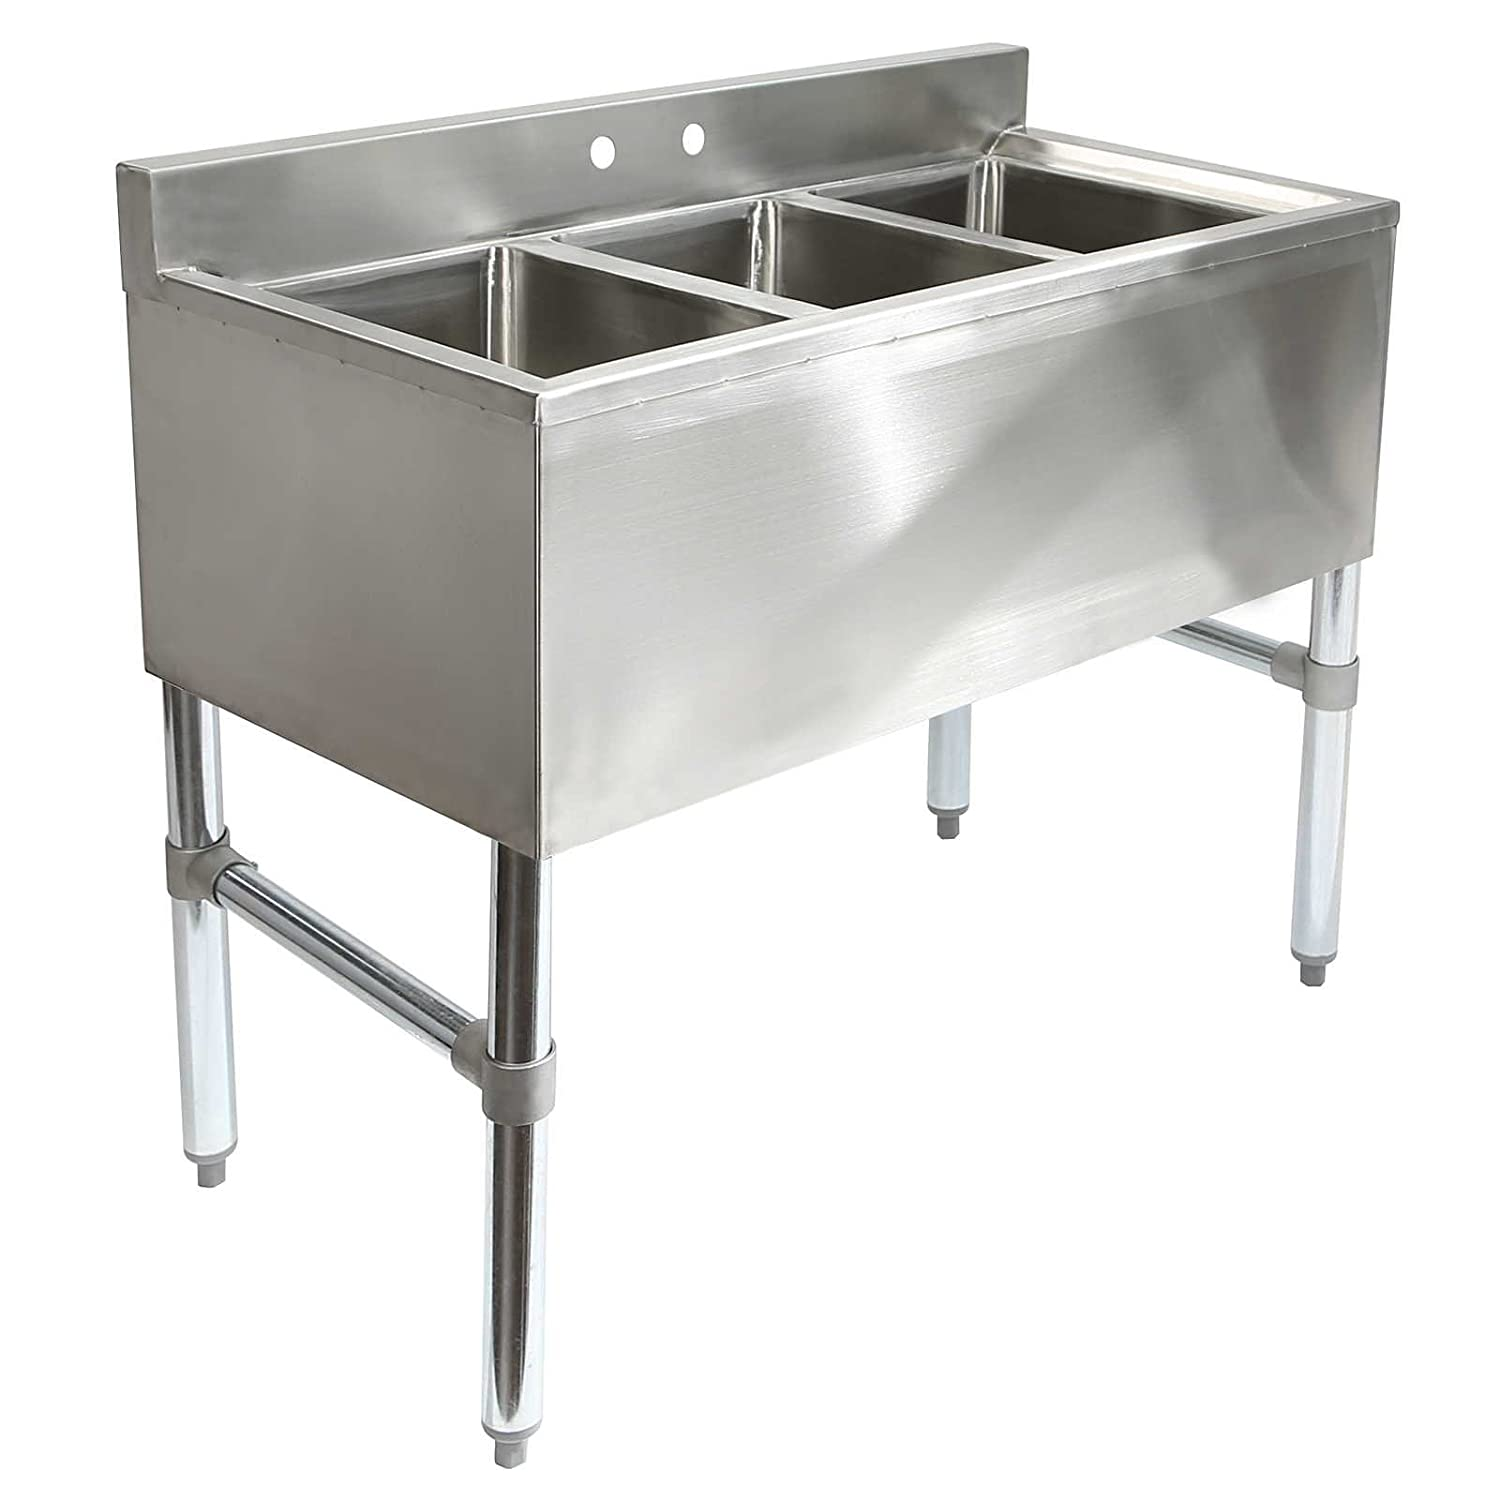 gridmann 3 compartment nsf stainless steel commercial underbar sink - Three Compartment Kitchen Sink